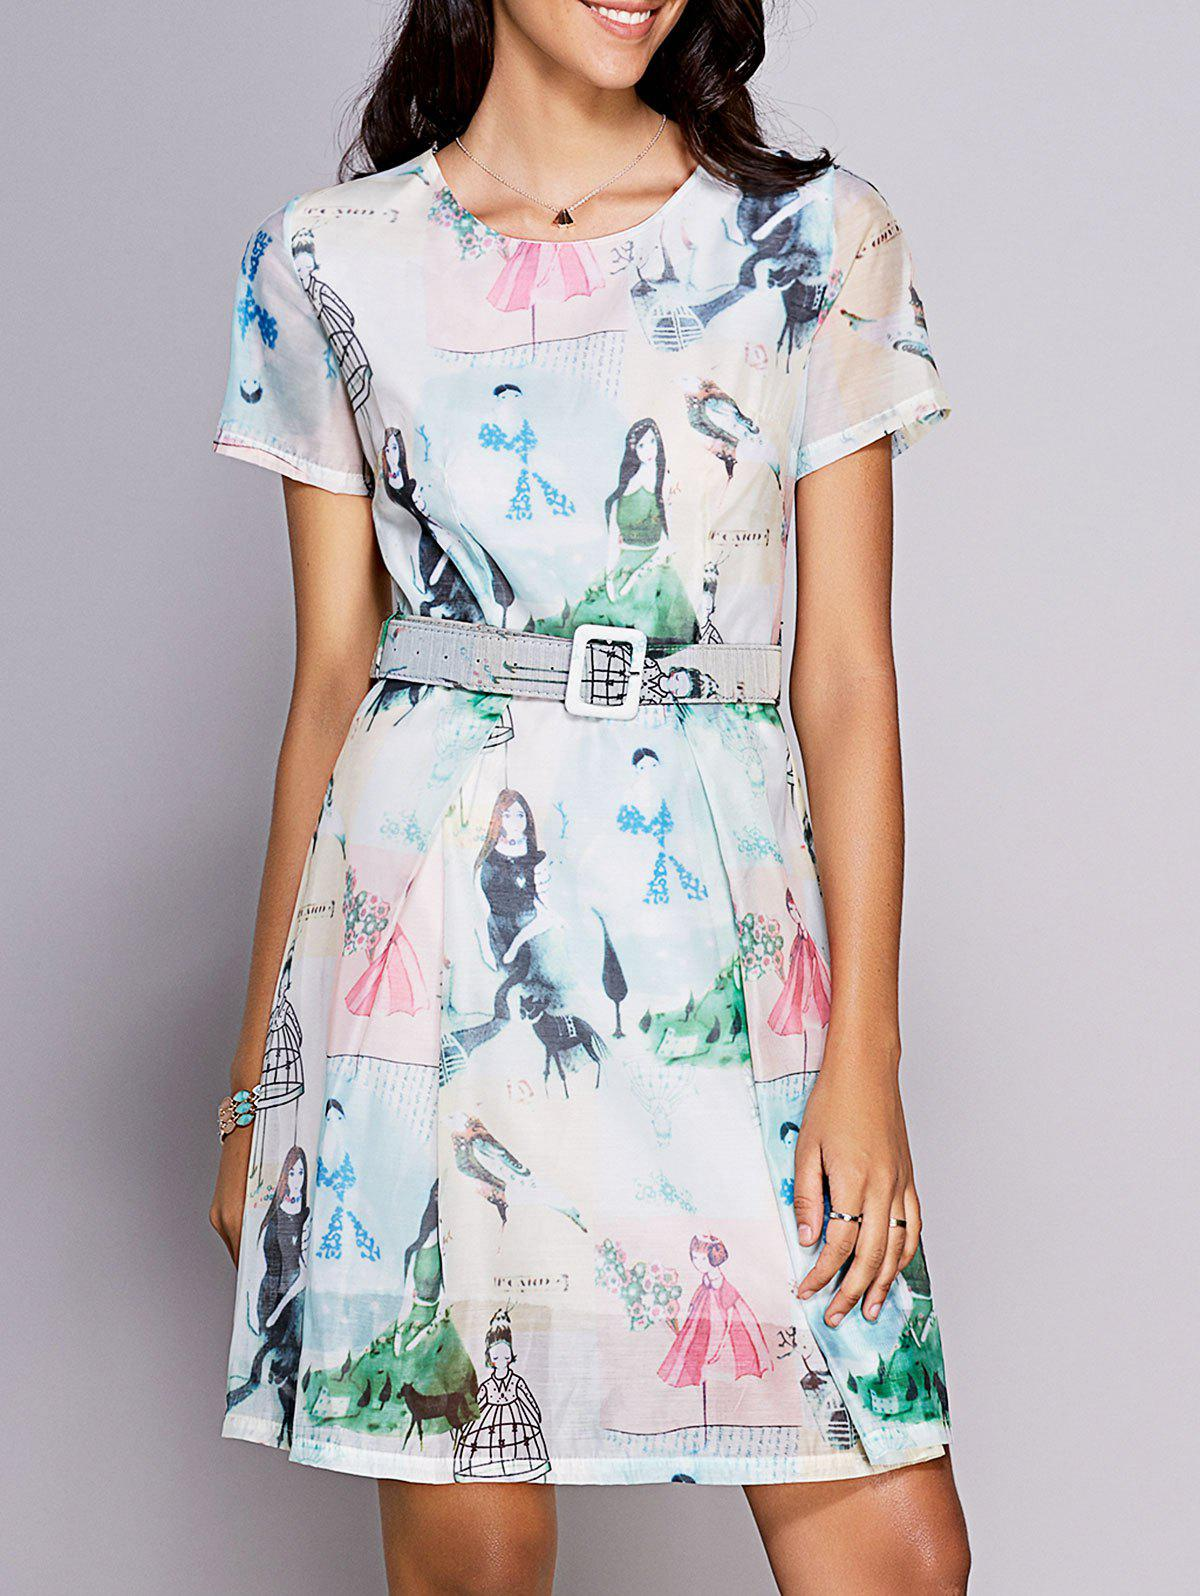 Women's Stylish Round Neck Short Sleeve Printed Belted Dress - COLORMIX S